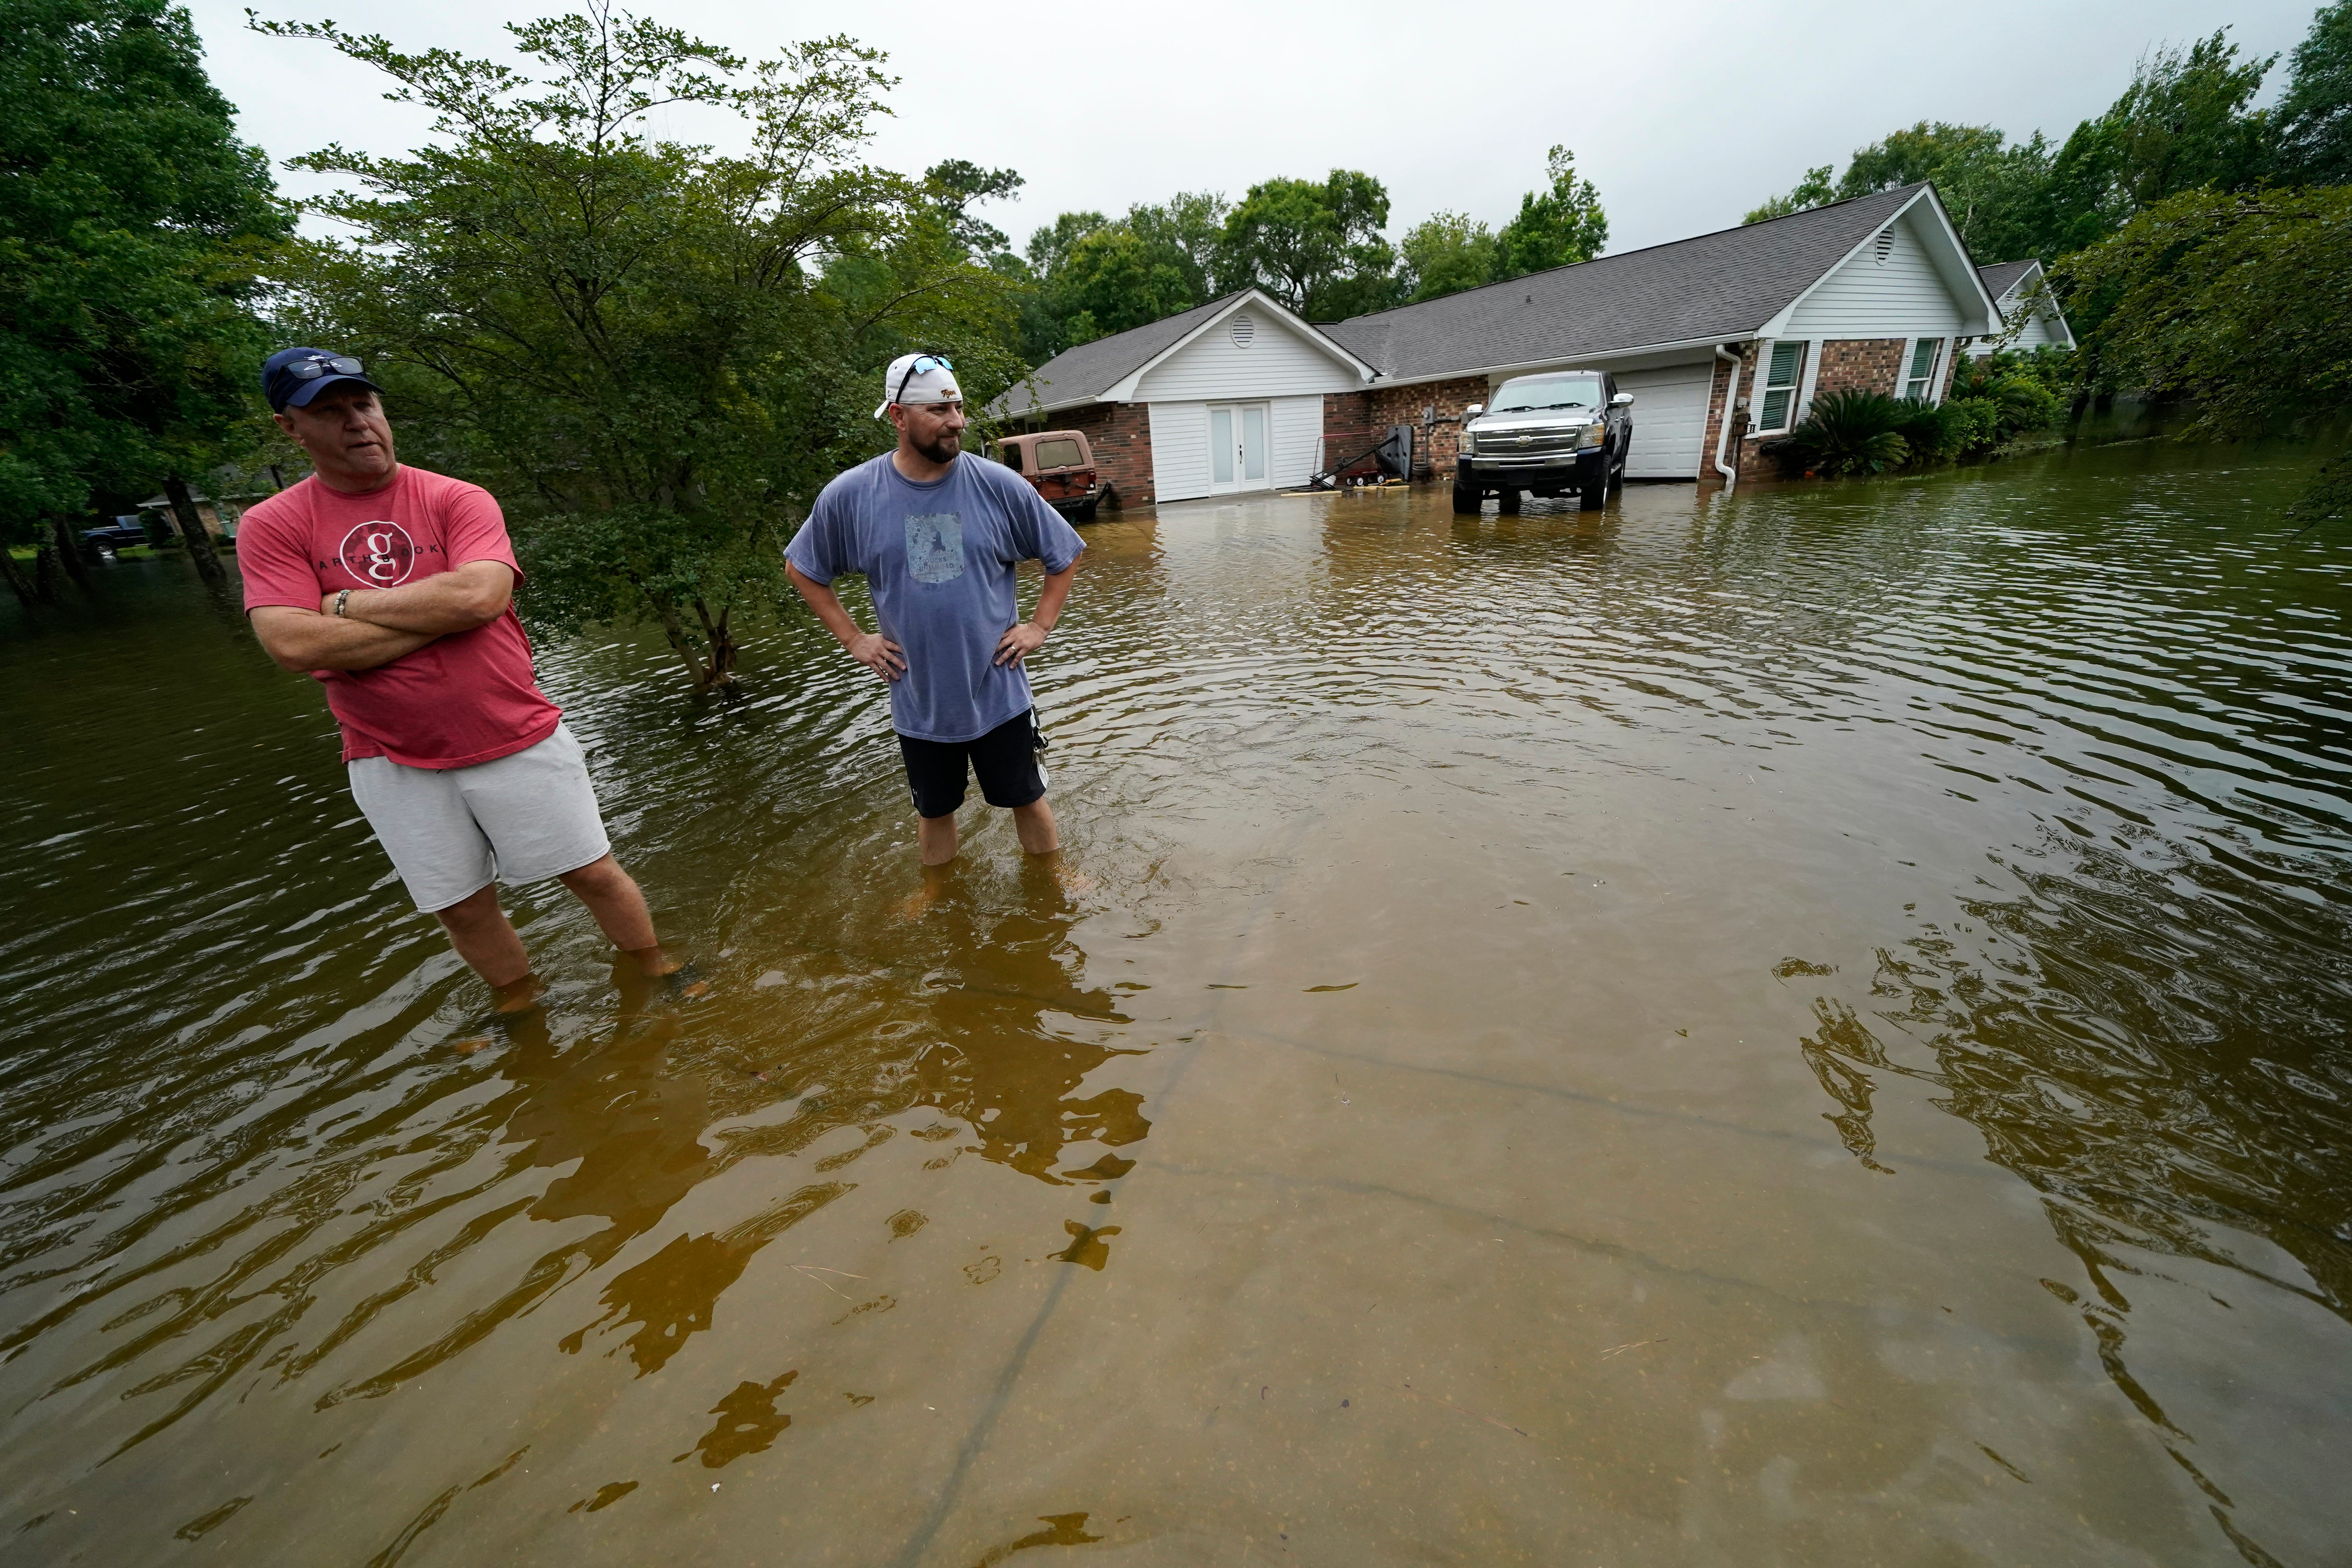 High winds, tornadoes and drenching rain reported as Tropical Depression Claudette batters parts of Gulf Coast